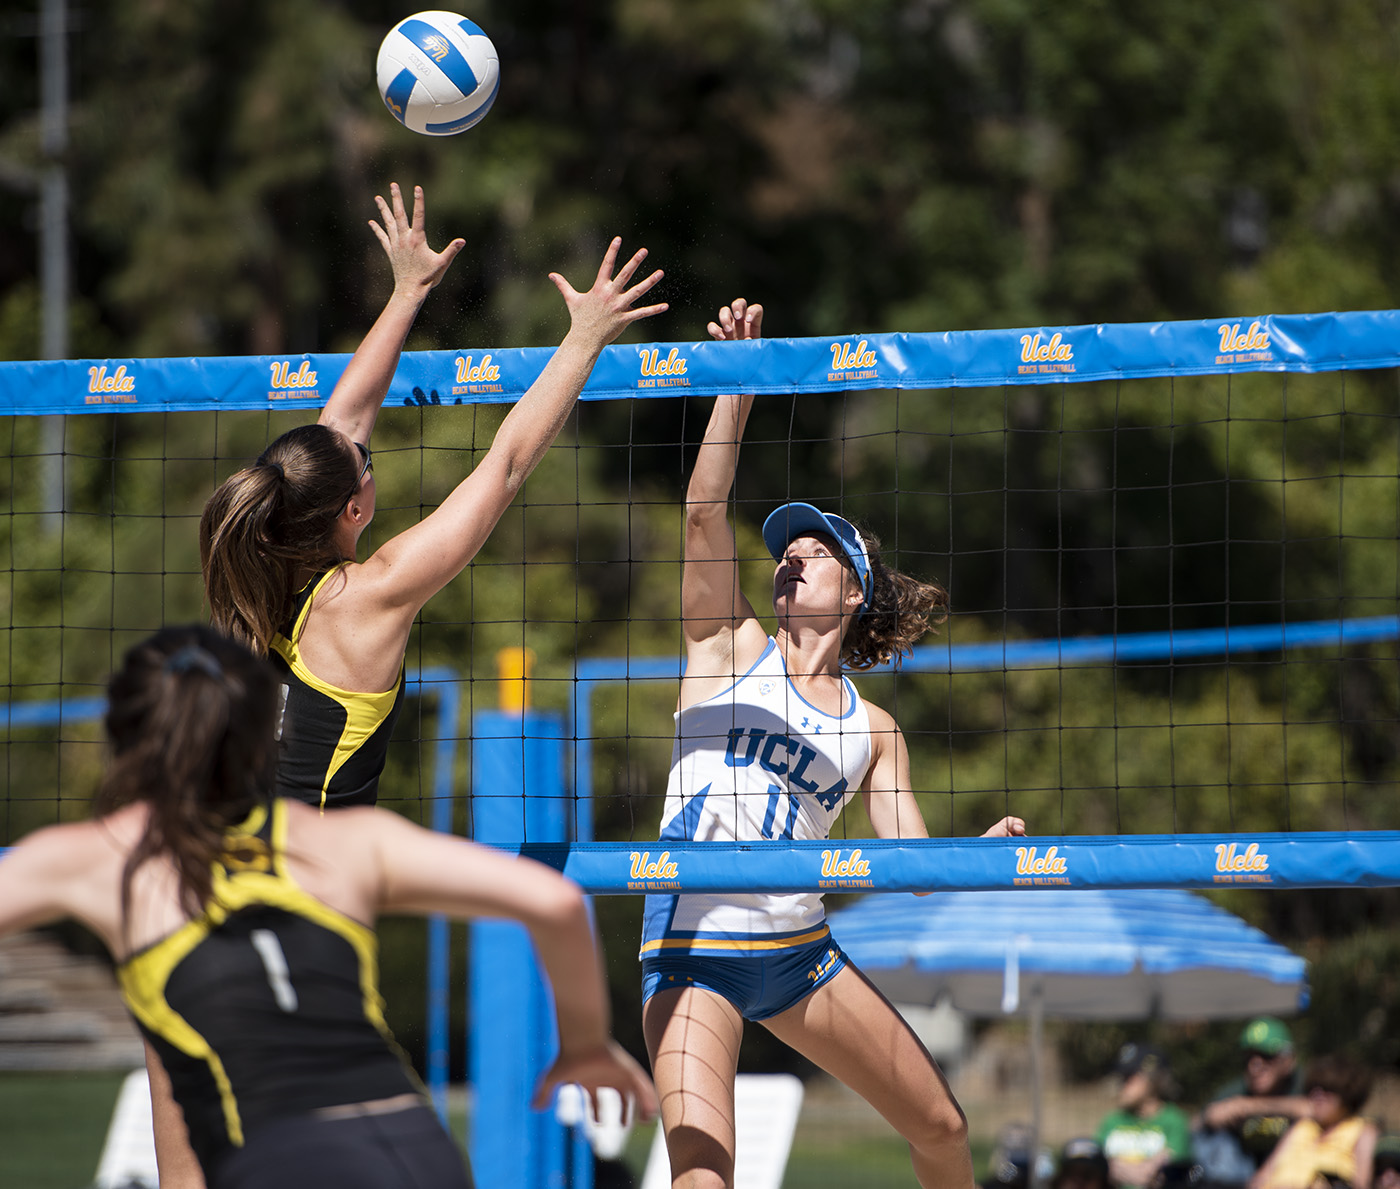 Beach volleyball returns to sand, to livestream 1st match against Long Beach State - Daily Bruin